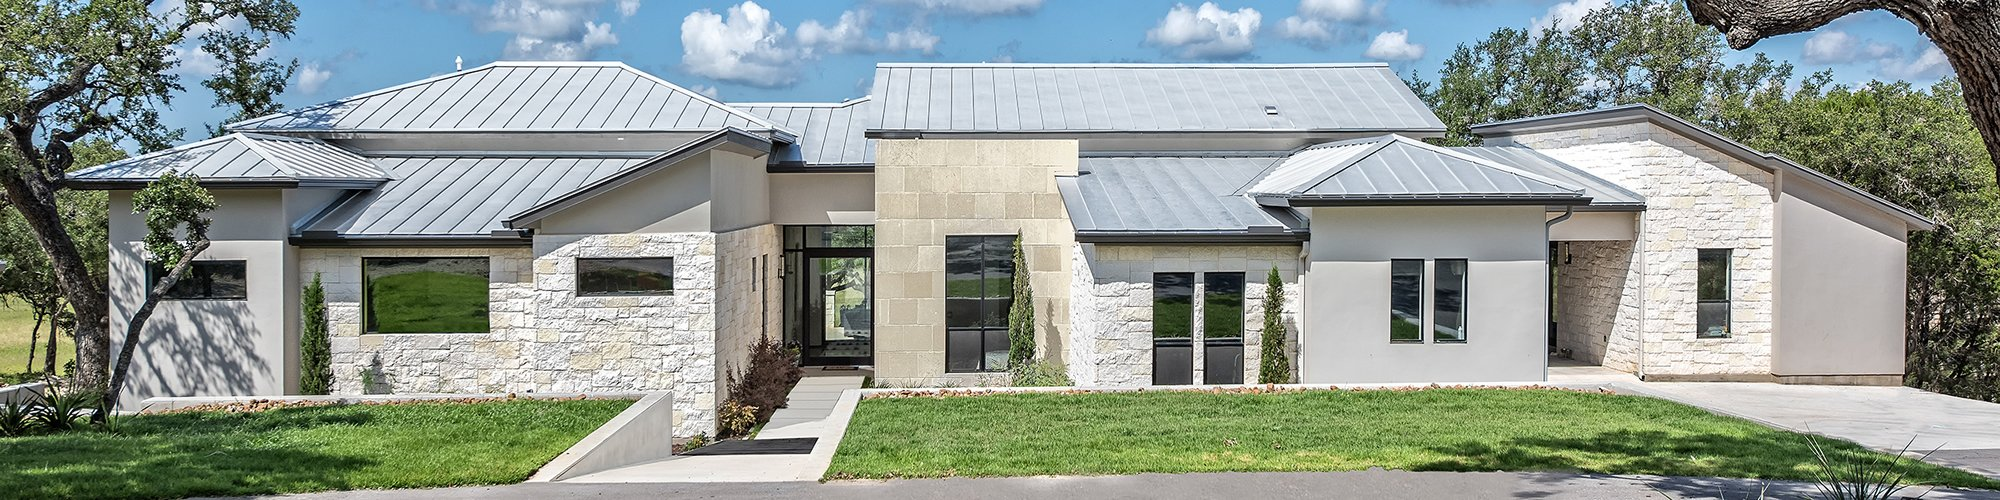 BIM/Design Resources has the ability to guide you through the process of building your new home.